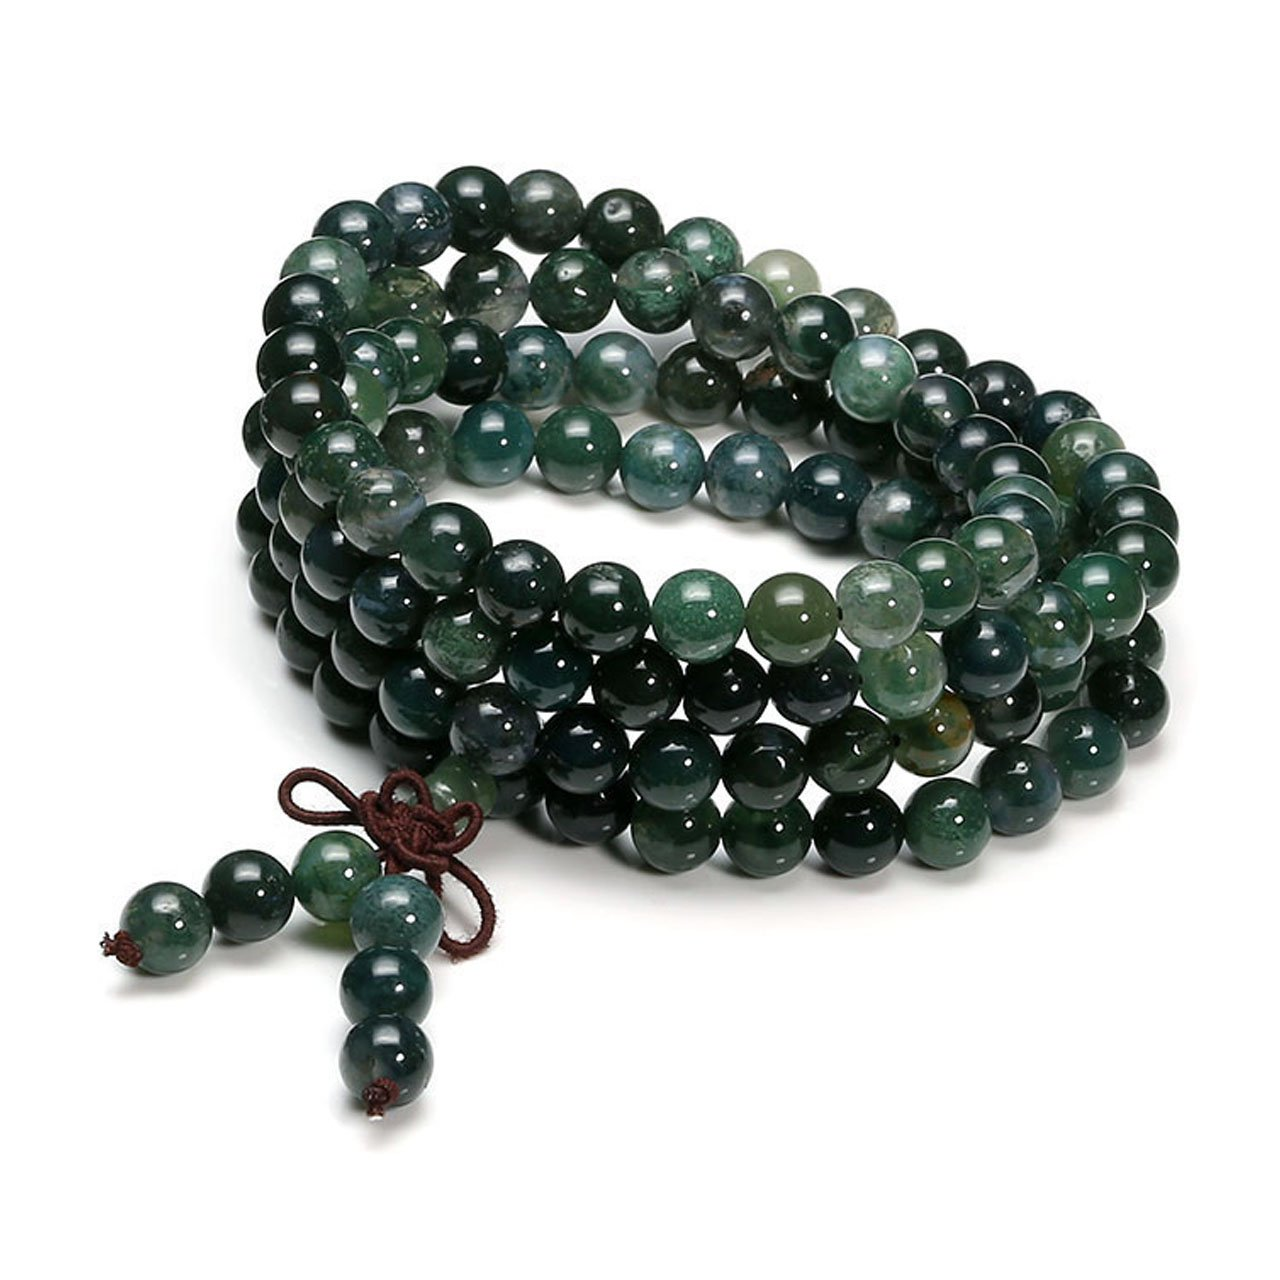 Top Plaza 8mm Tibetan Buddhist Moss Agate Reiki Healing Gemstone Beads 108 Mala Prayer Meditation Rosary Wrap Bracelet Necklace